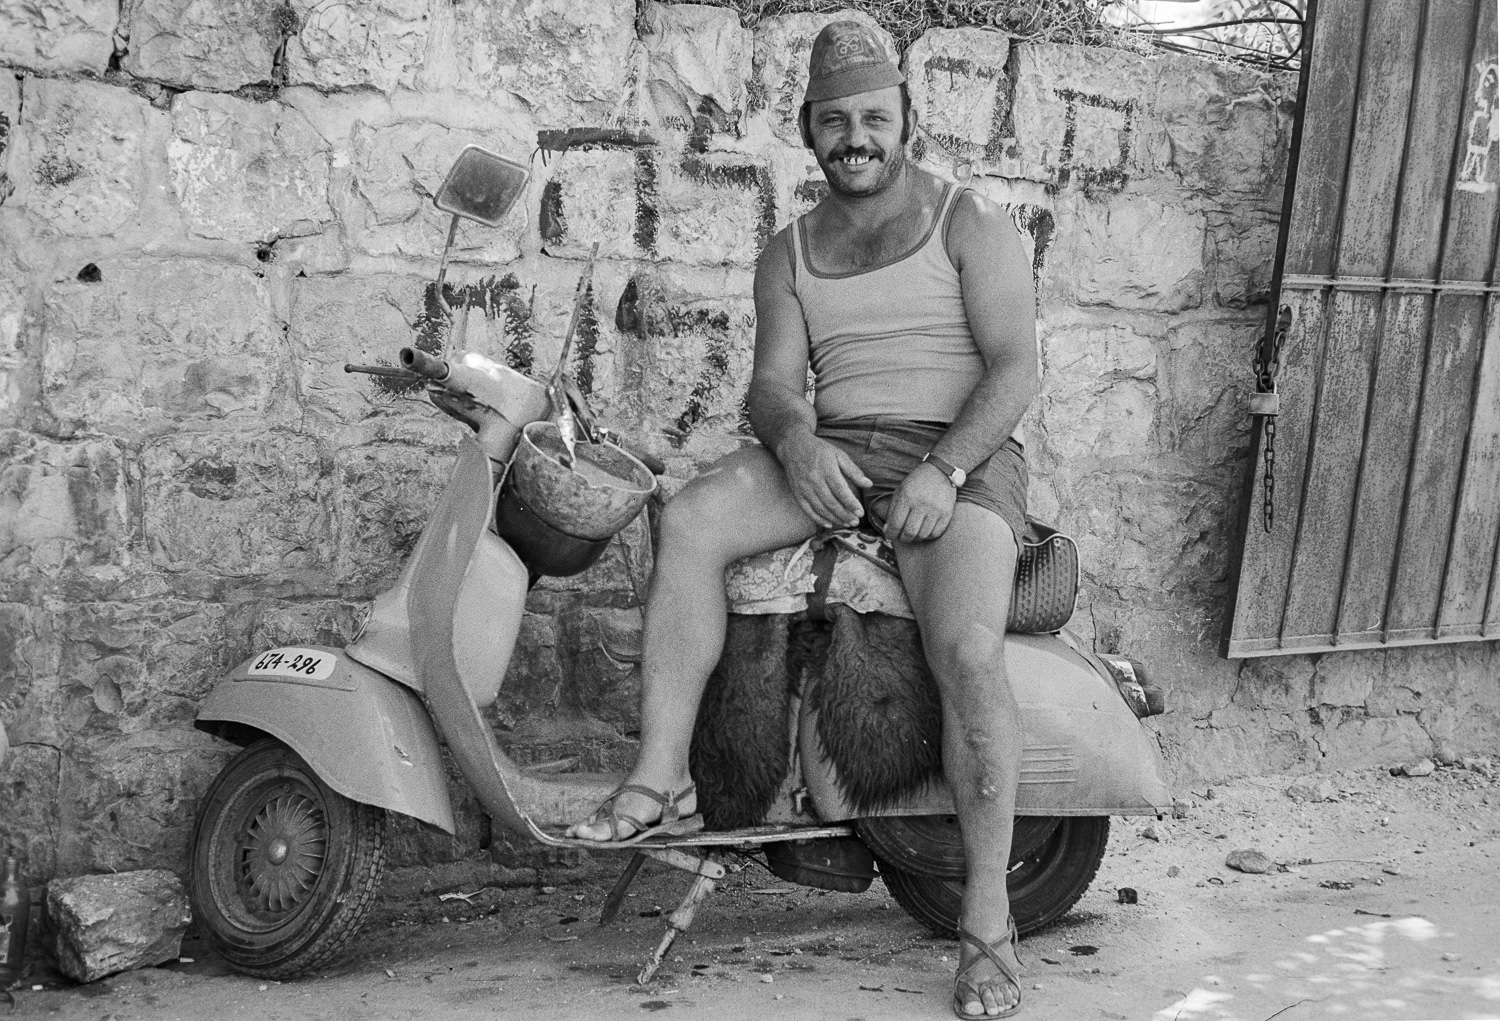 Man and scooter, Jerusalem - 1978